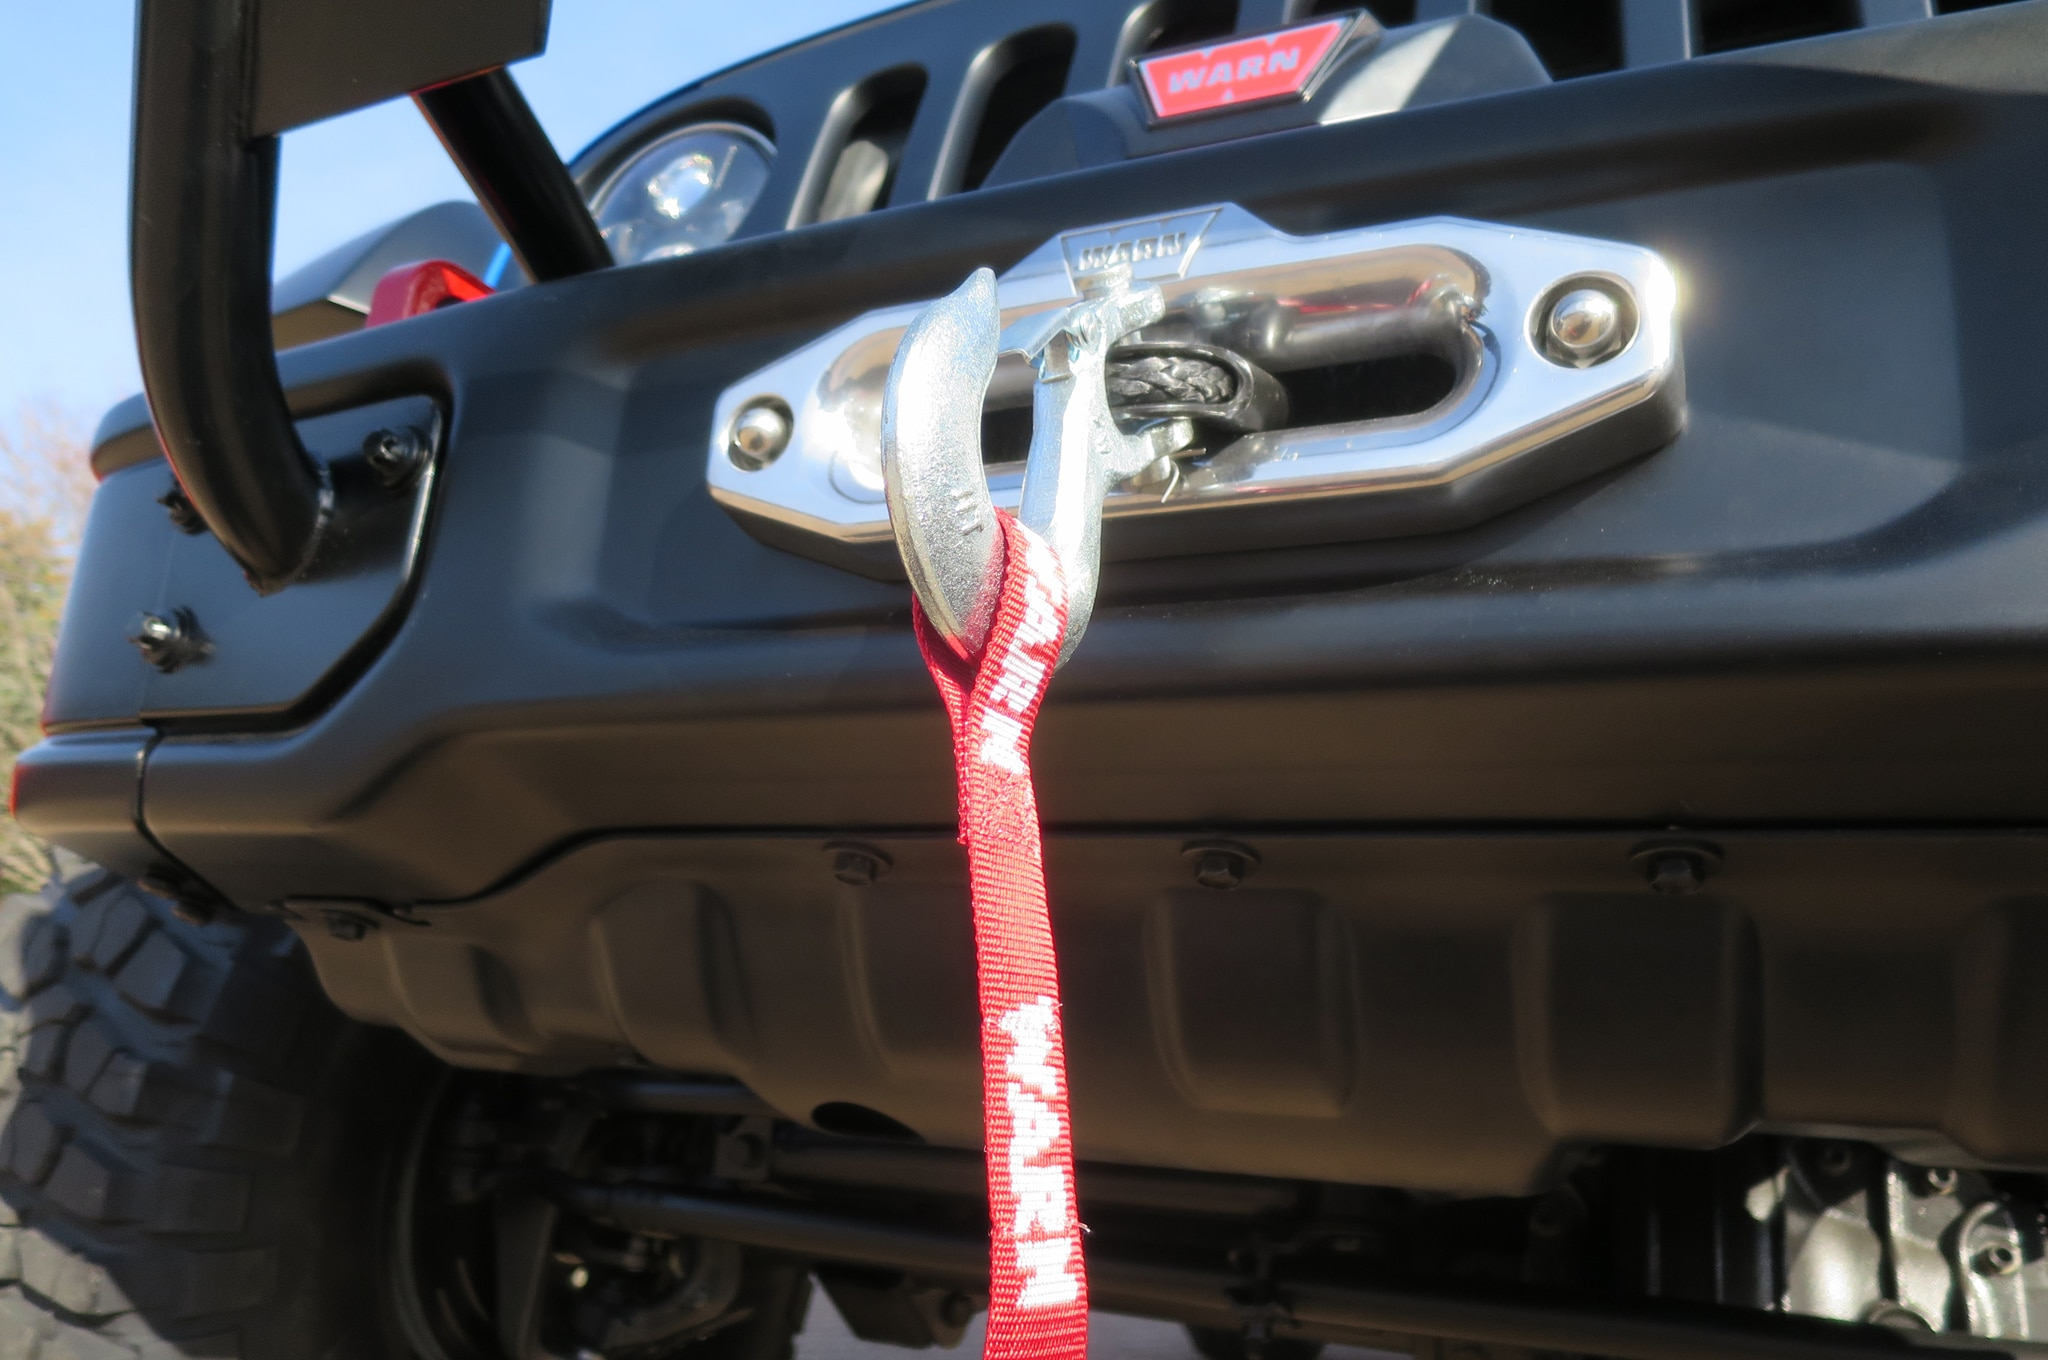 Jeep Wrangler Maximum Performance Concept tow hook